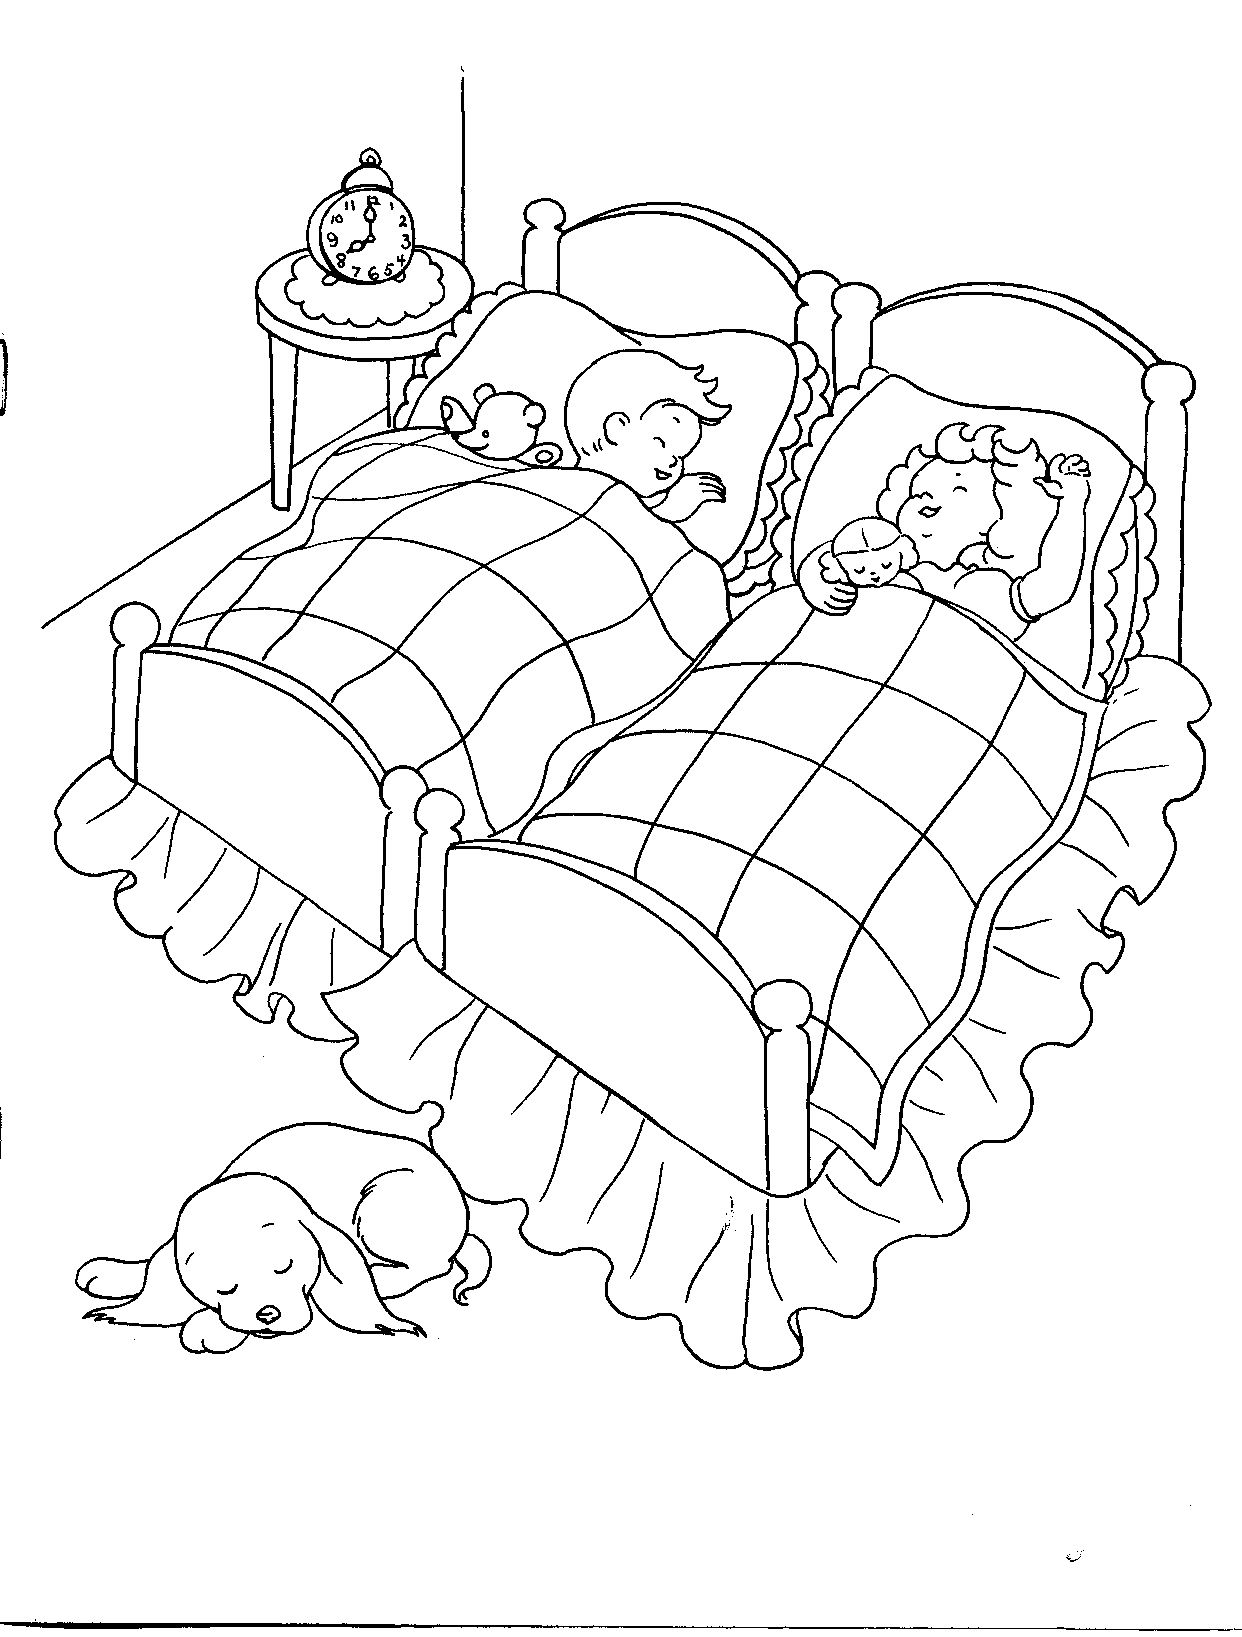 1952 Mother Goose Cut-Out Coloring Book | Colouring Pages GiRLs ...